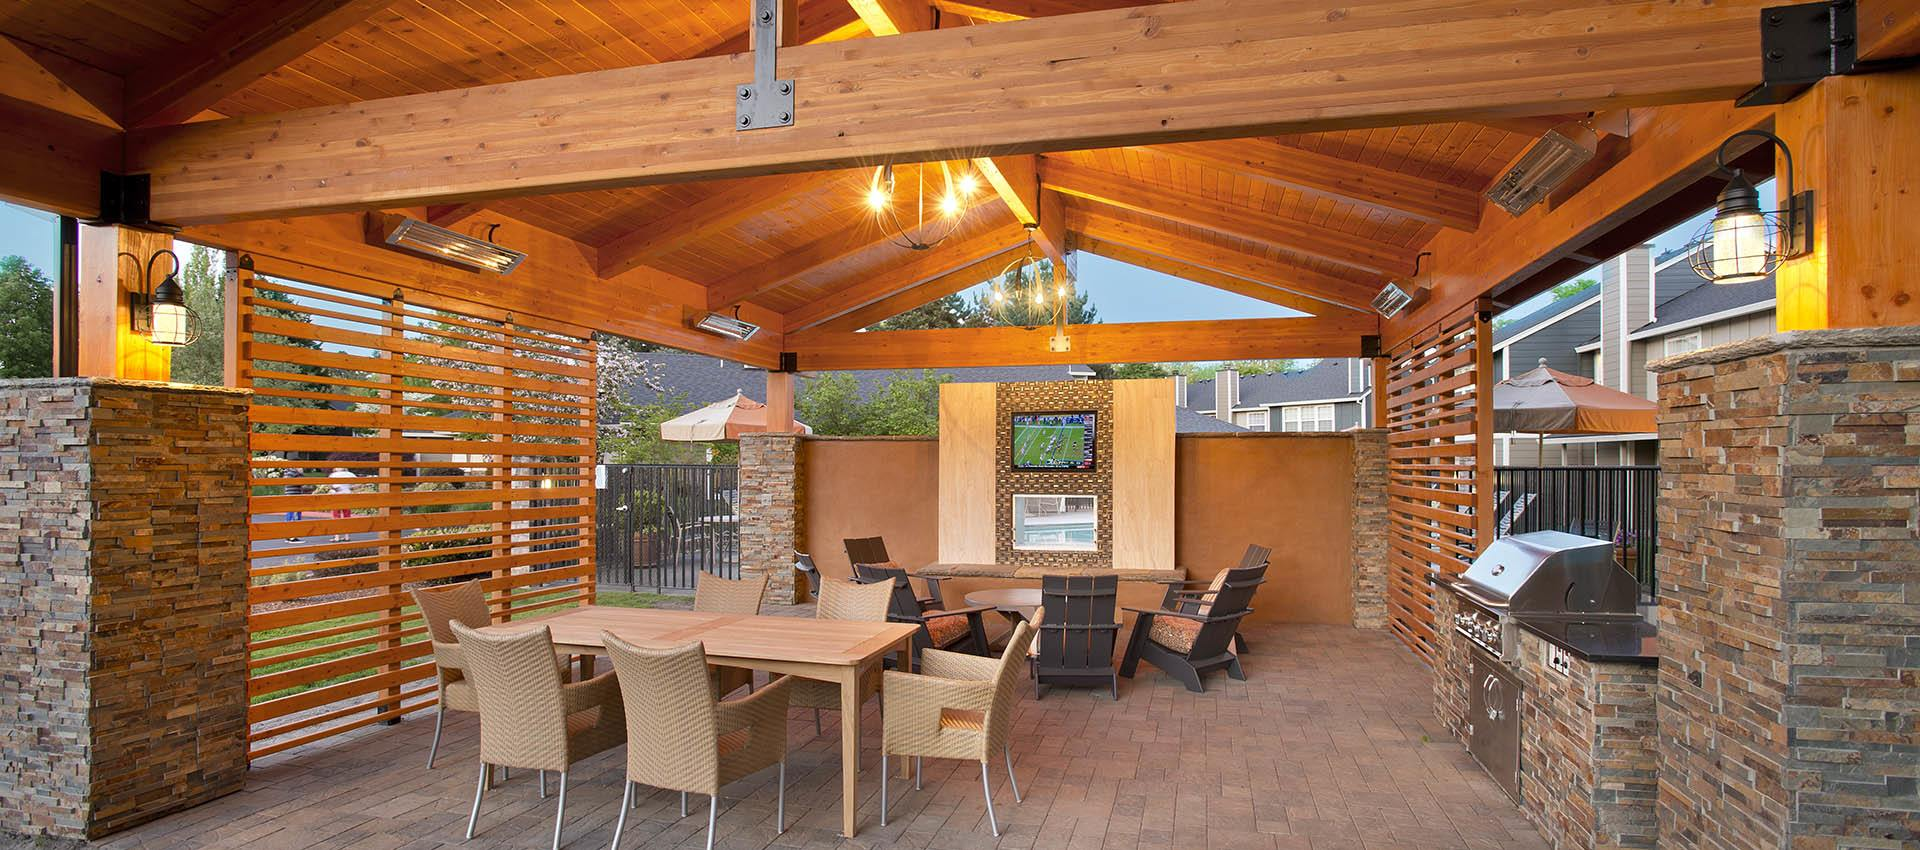 Outdoor lounge at apartments in Vancouver, WA